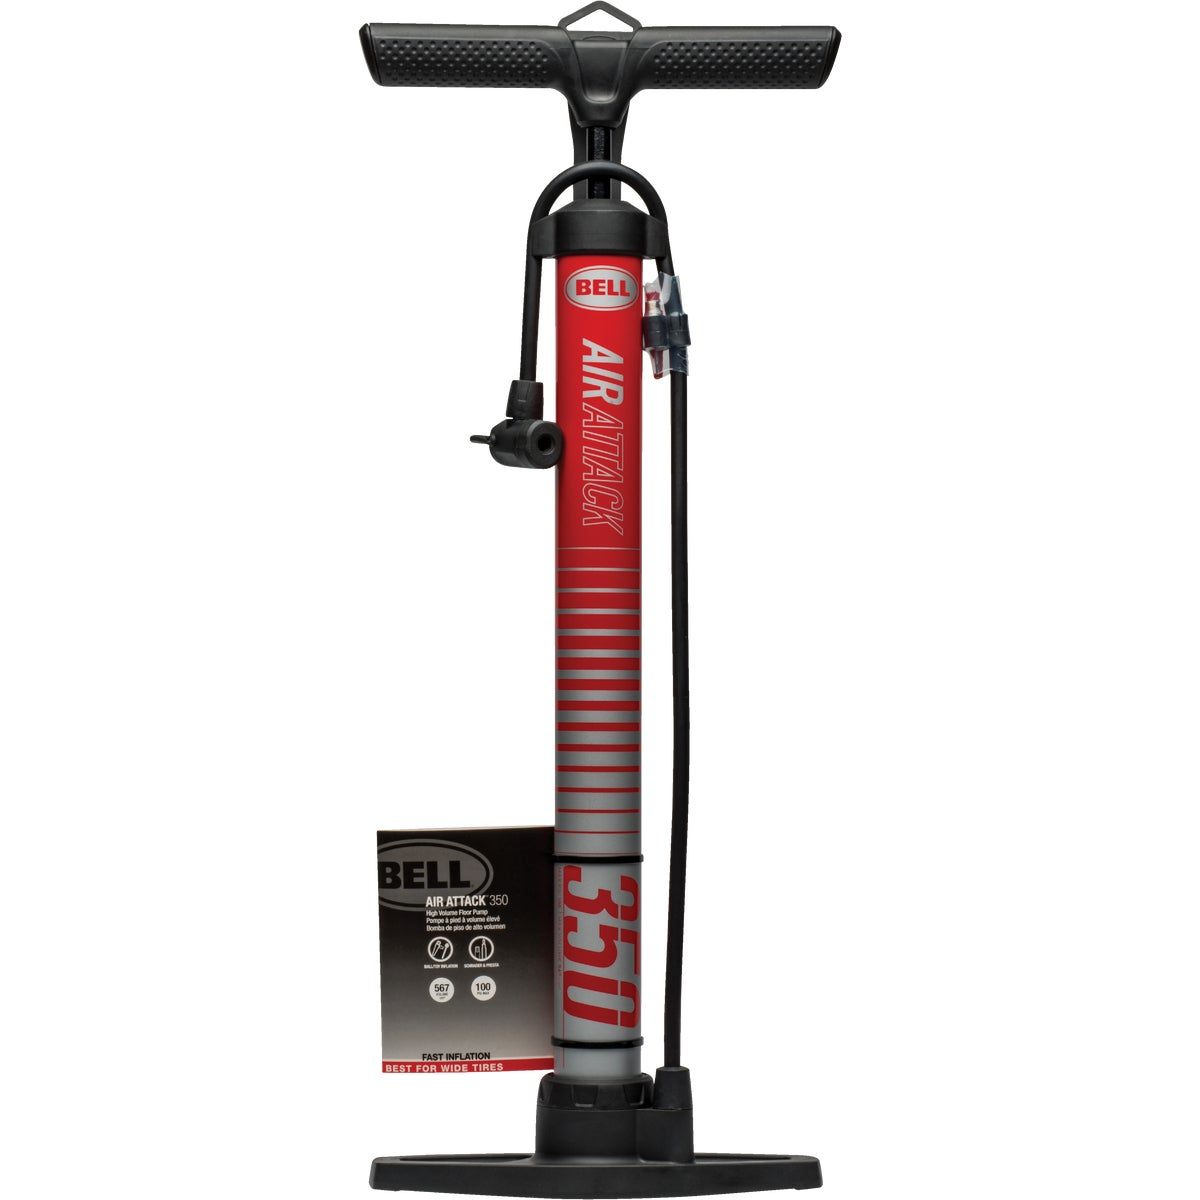 100PSI FLOOR PUMP - 7015728 by Bell Sports